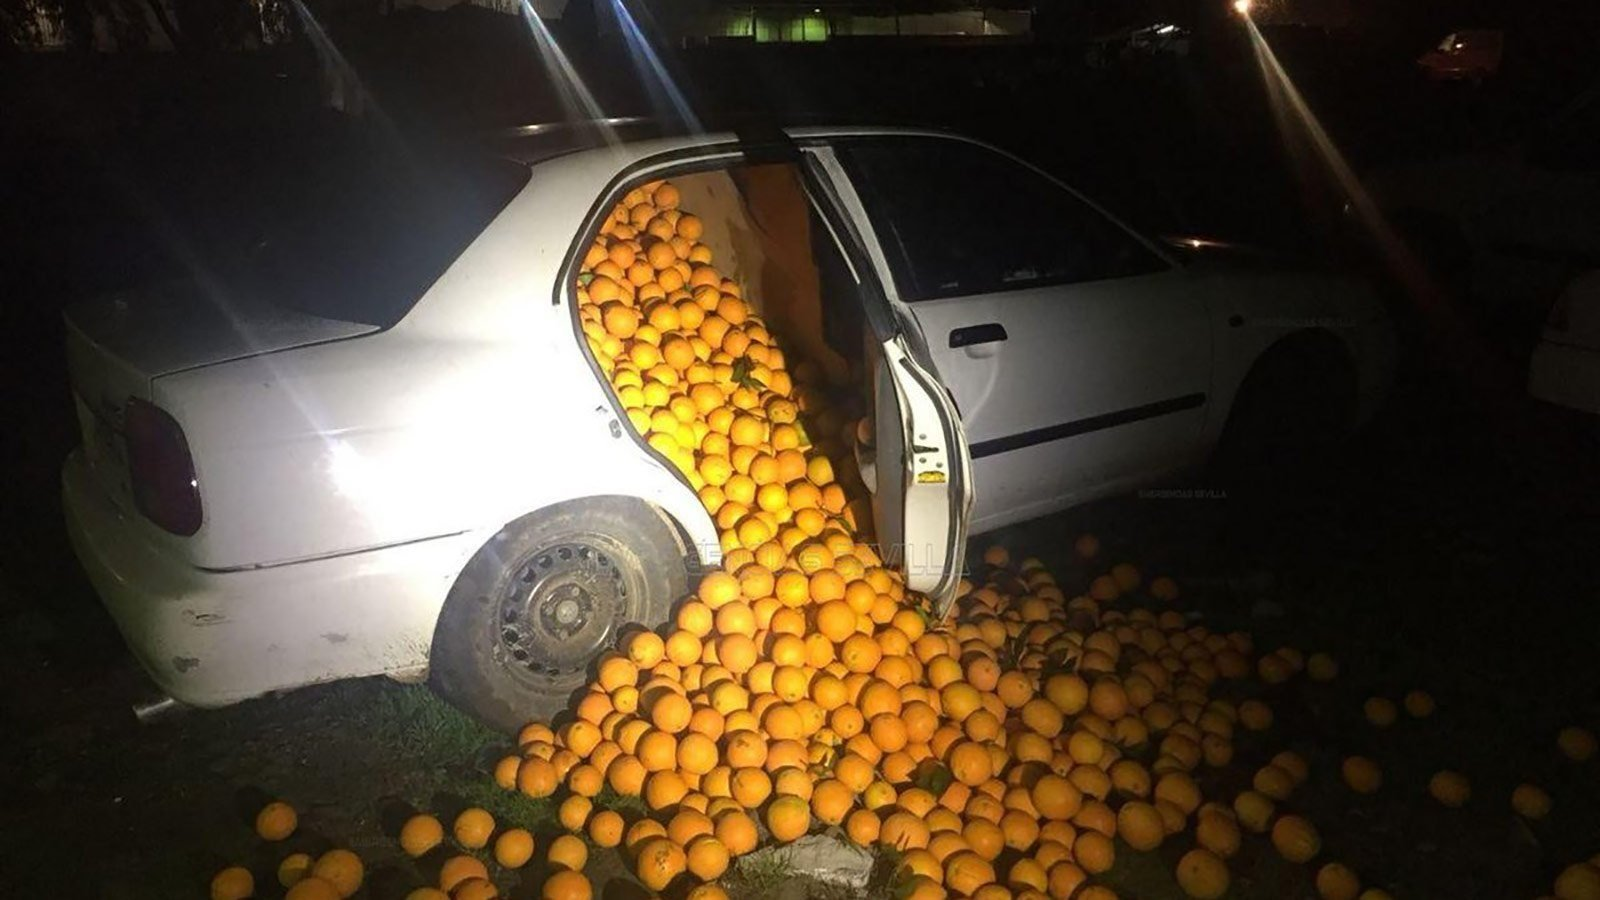 Police in Seville find four TONNES of oranges crammed into 'suspicious' cars